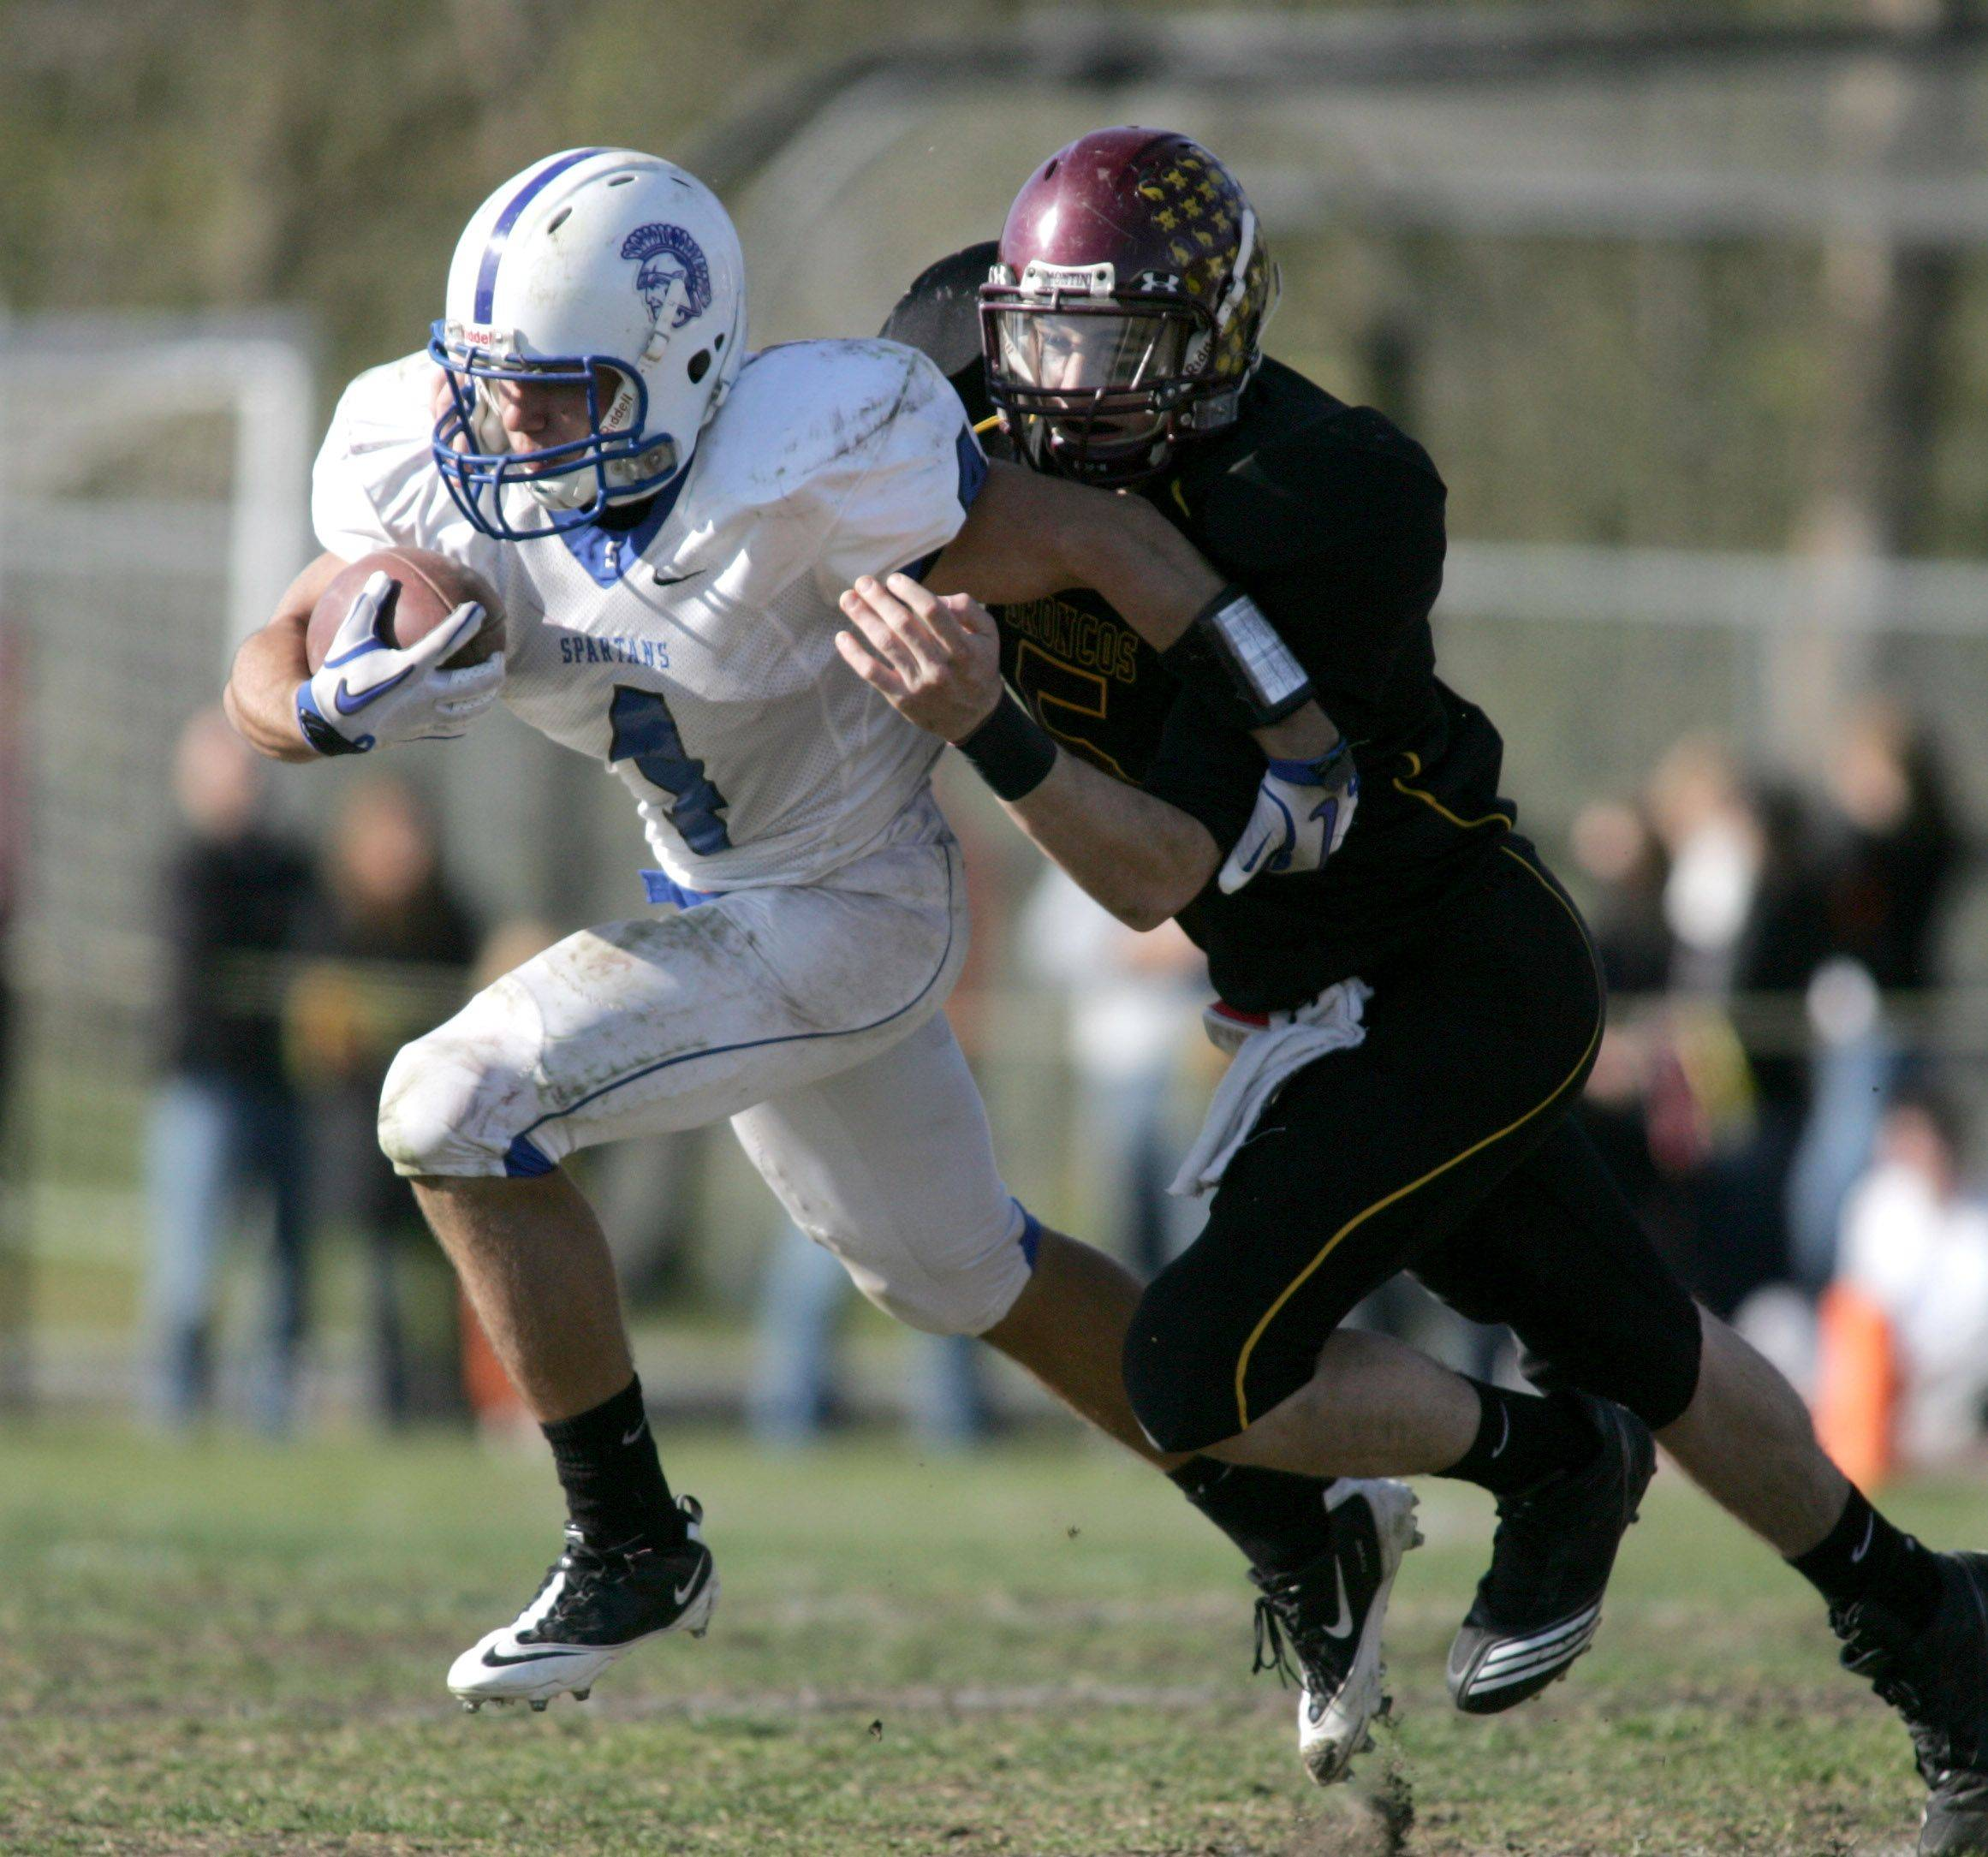 Ben Trimble of St. Francis, left, moves with the ball.